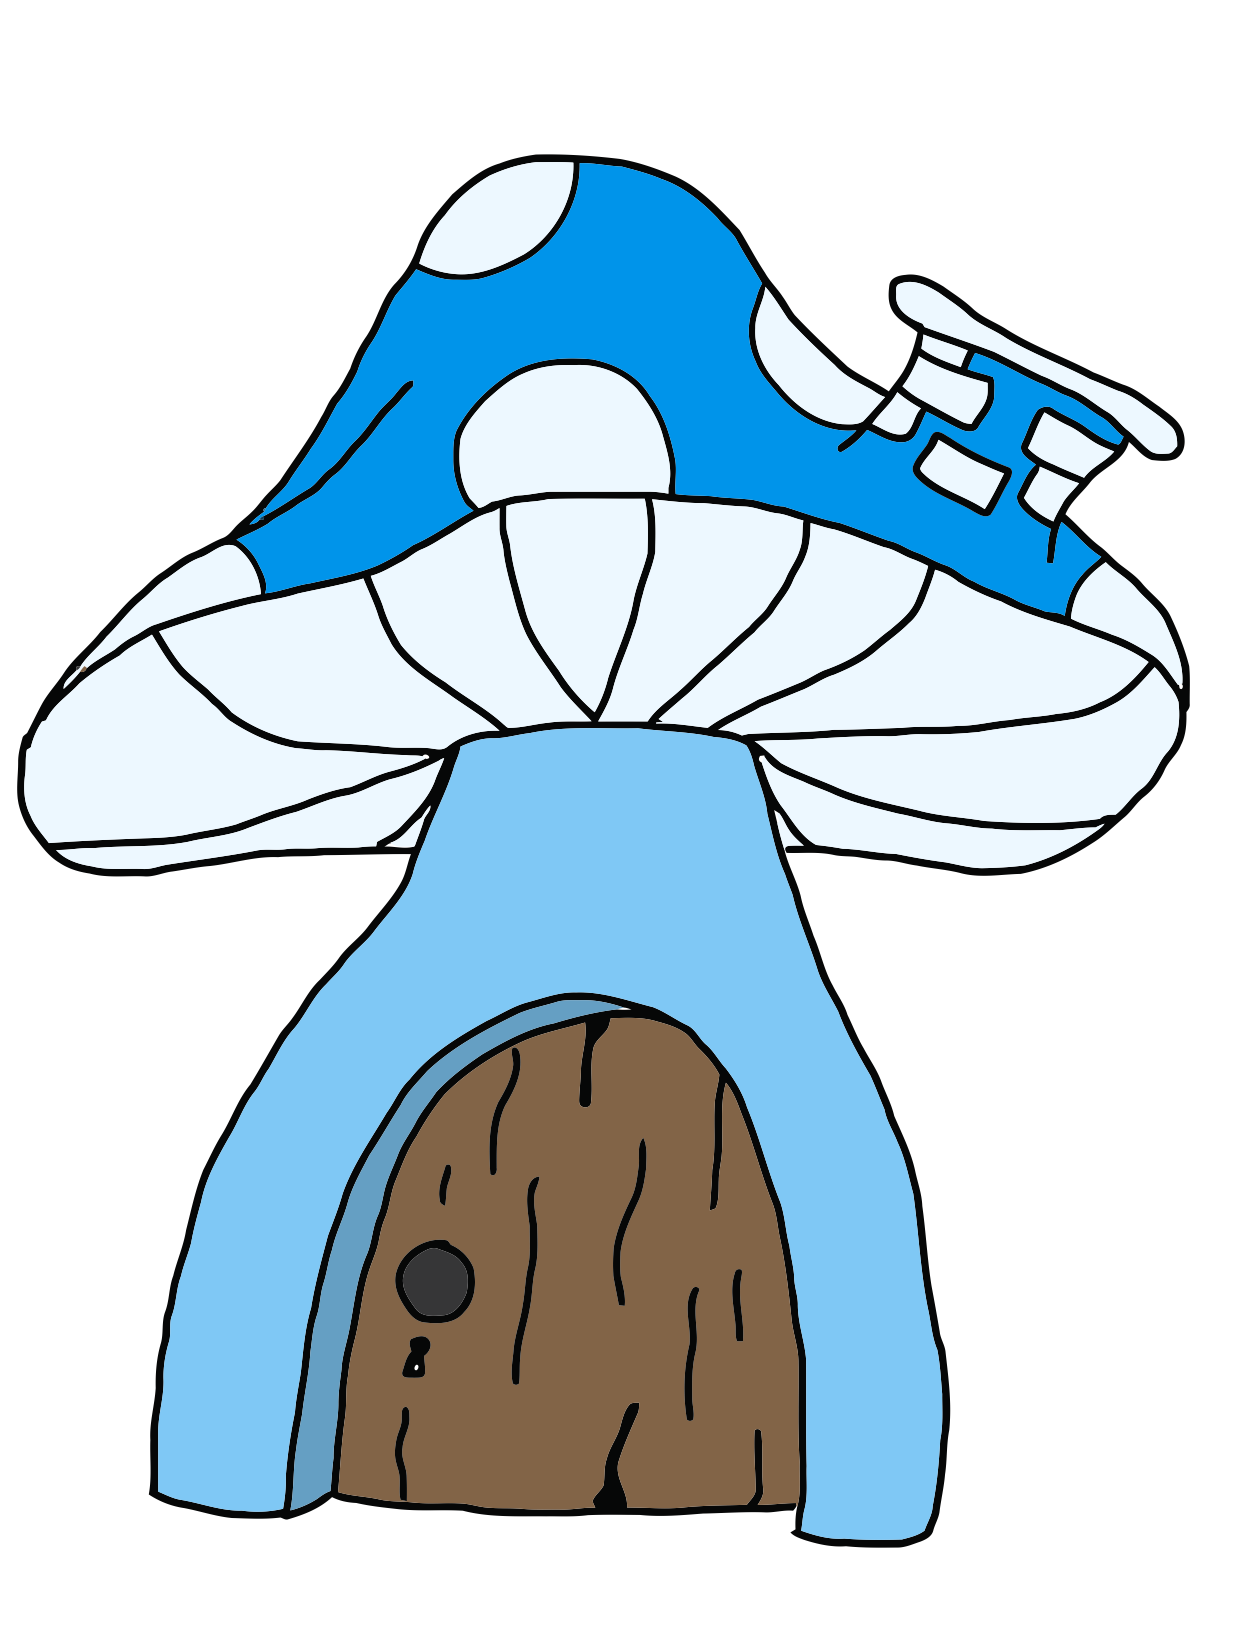 Drawing shrooms color. Champi on mushrooms